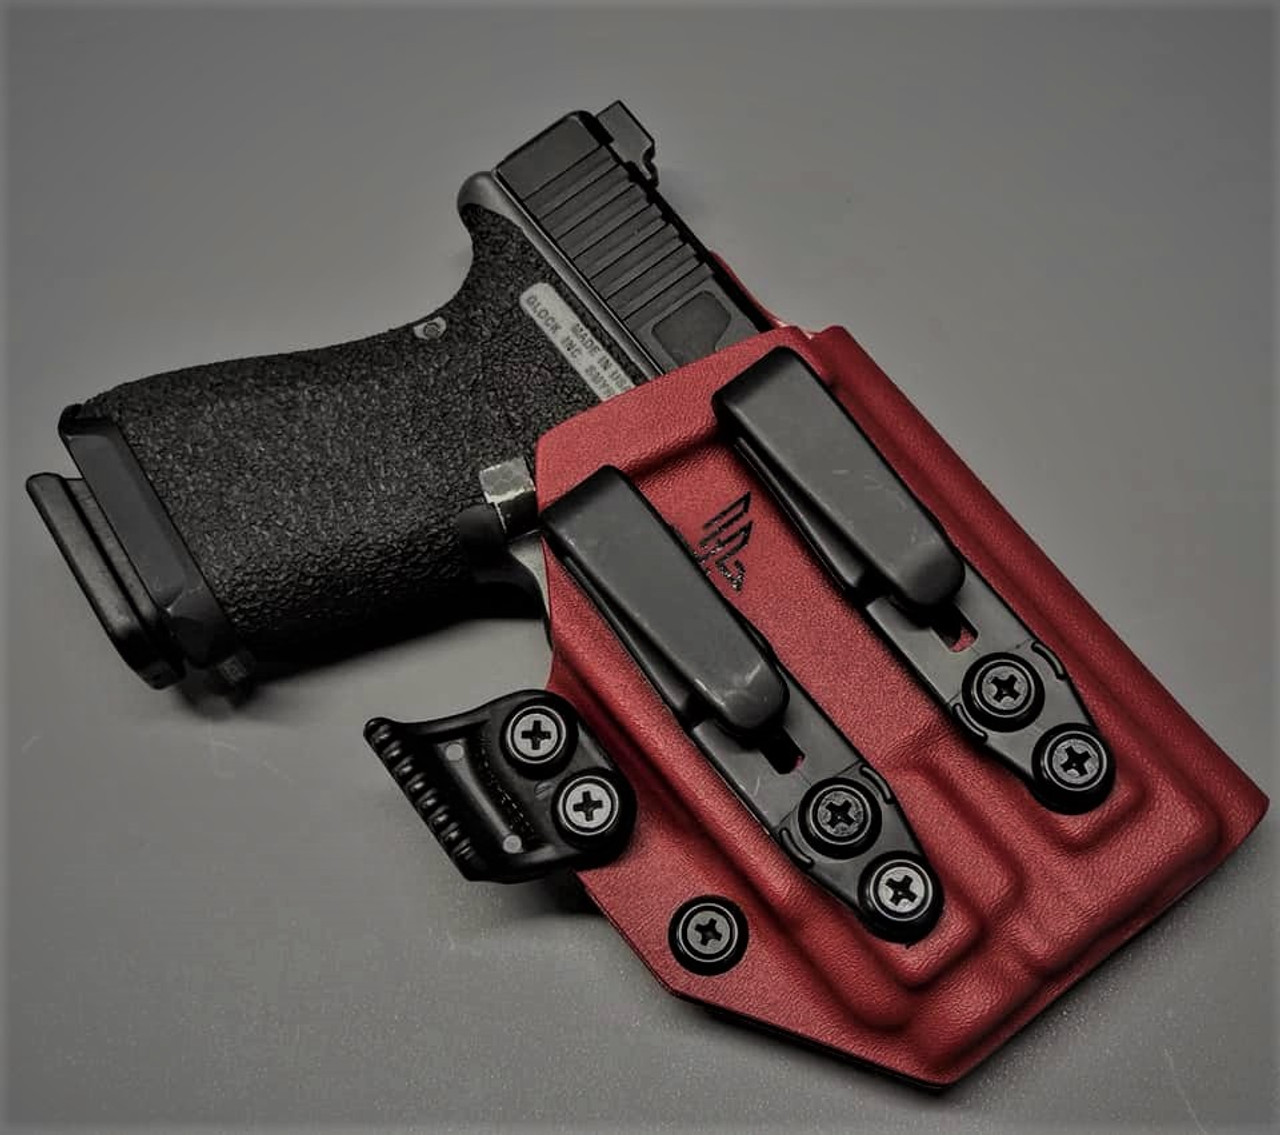 Glock 19 Streamlight TLR7 Holster